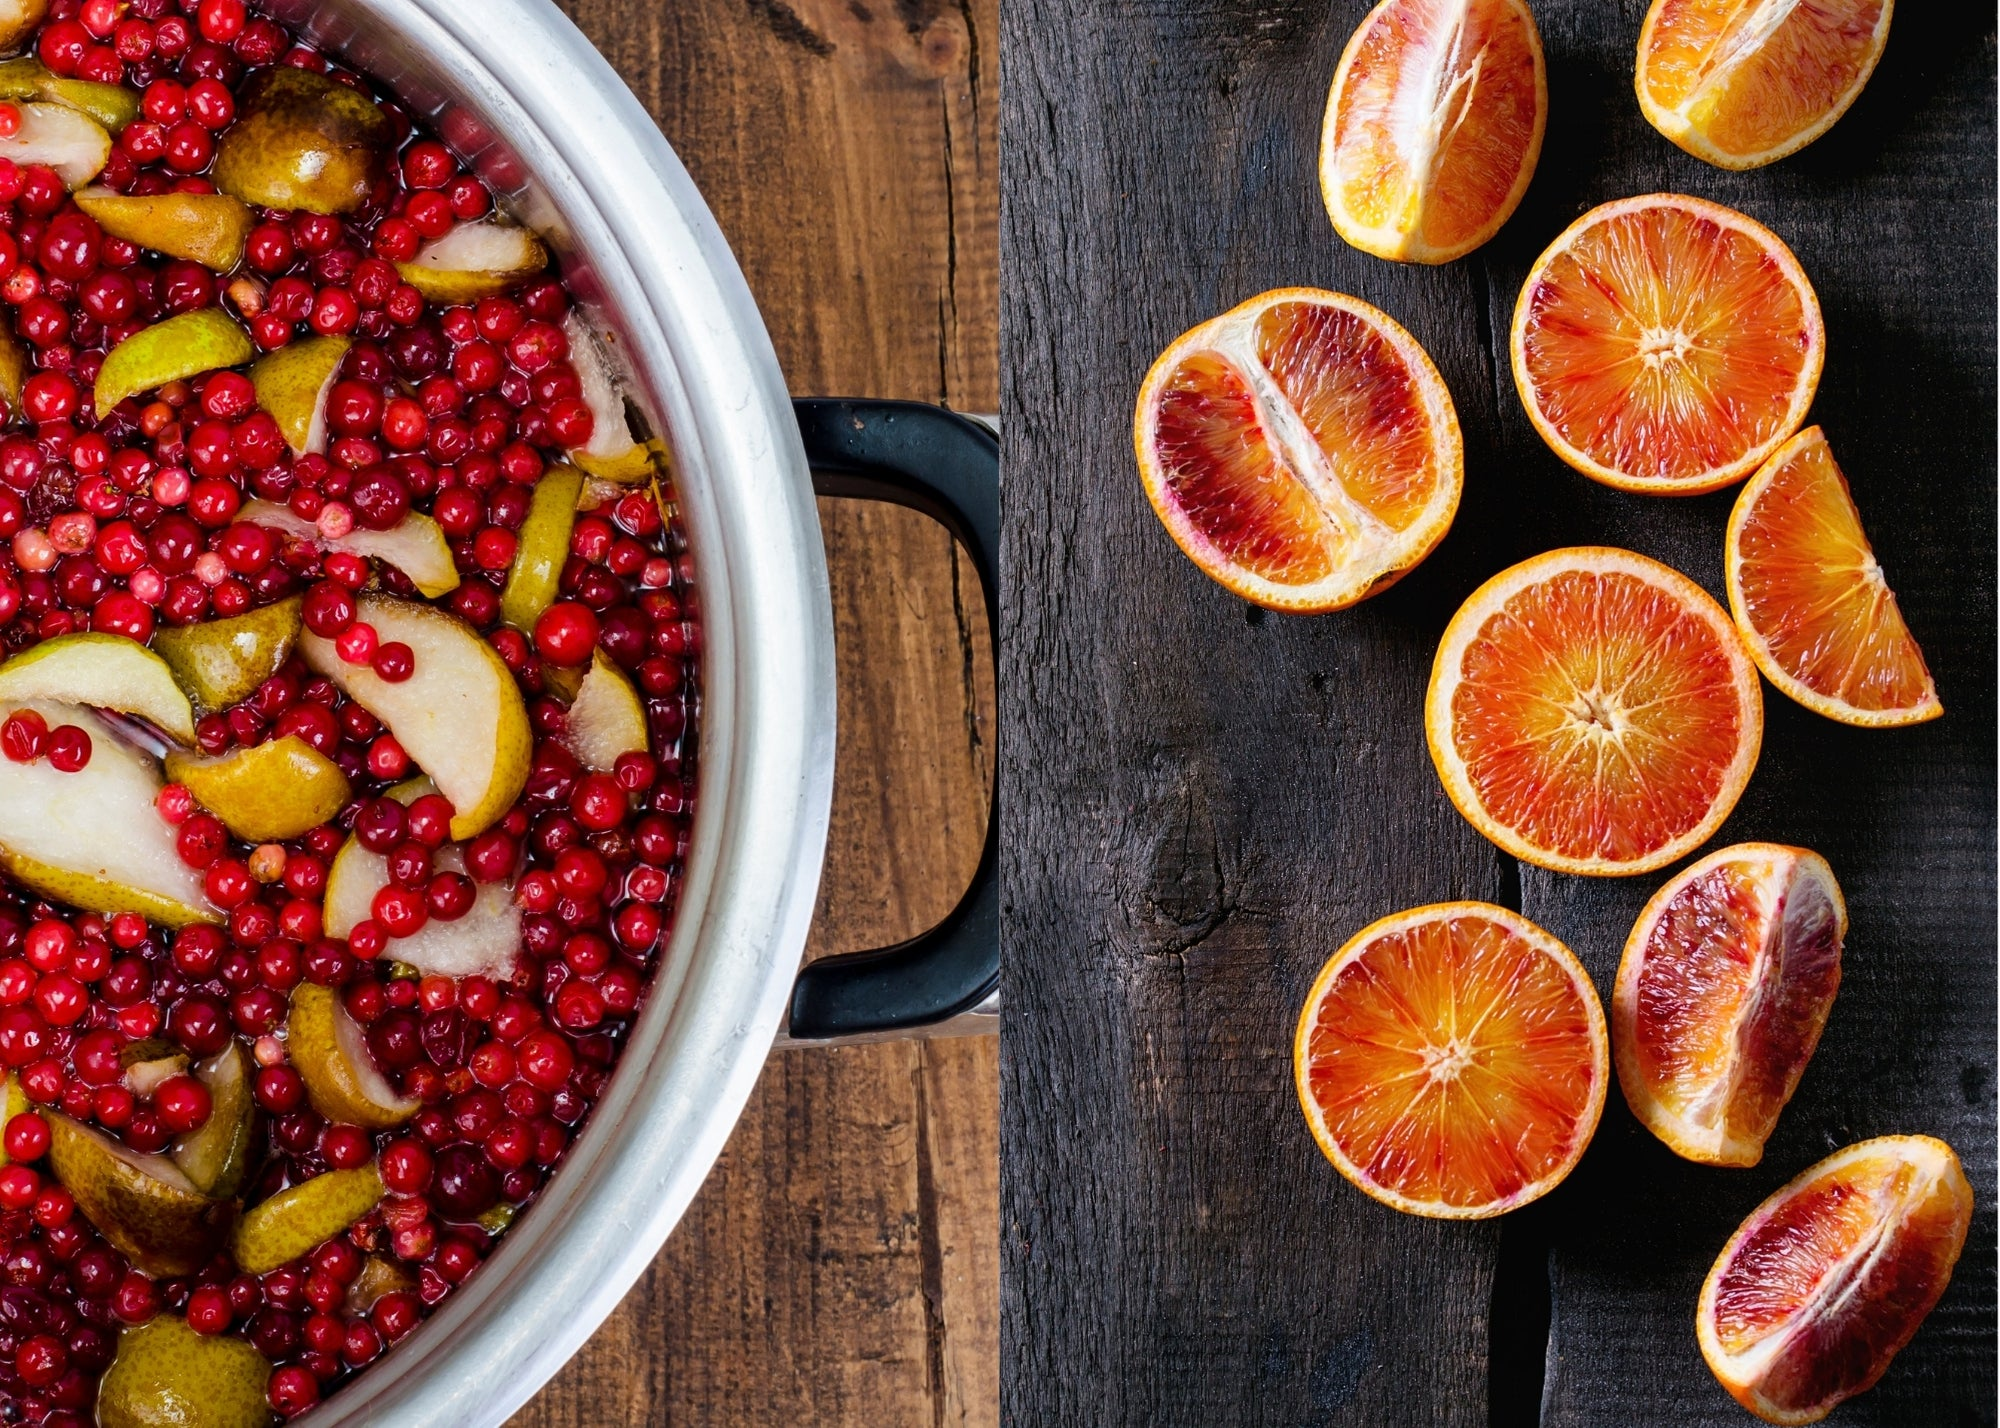 Blood Orange Olive Oil & Cranberry-Pear White Balsamic